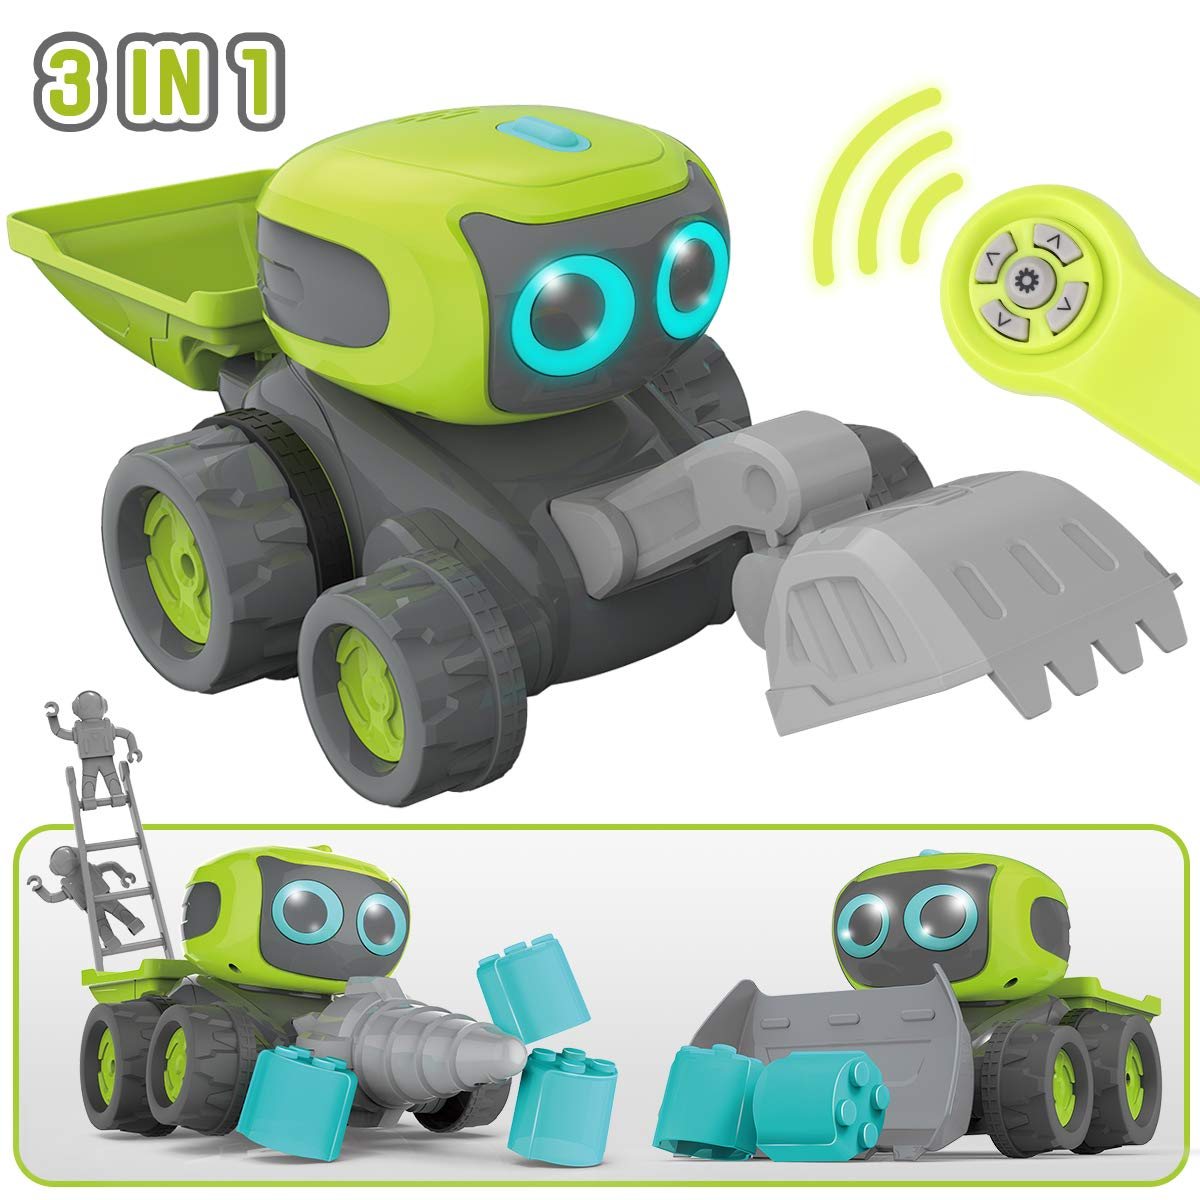 GILOBABY Remote Control Construction Team Engineering Vehicle, 3 in 1 RC Robot Car, Dance Moves, Plays Music, Light-up Eyes, Gift for Kids Age 3+ by GILOBABY (Image #1)